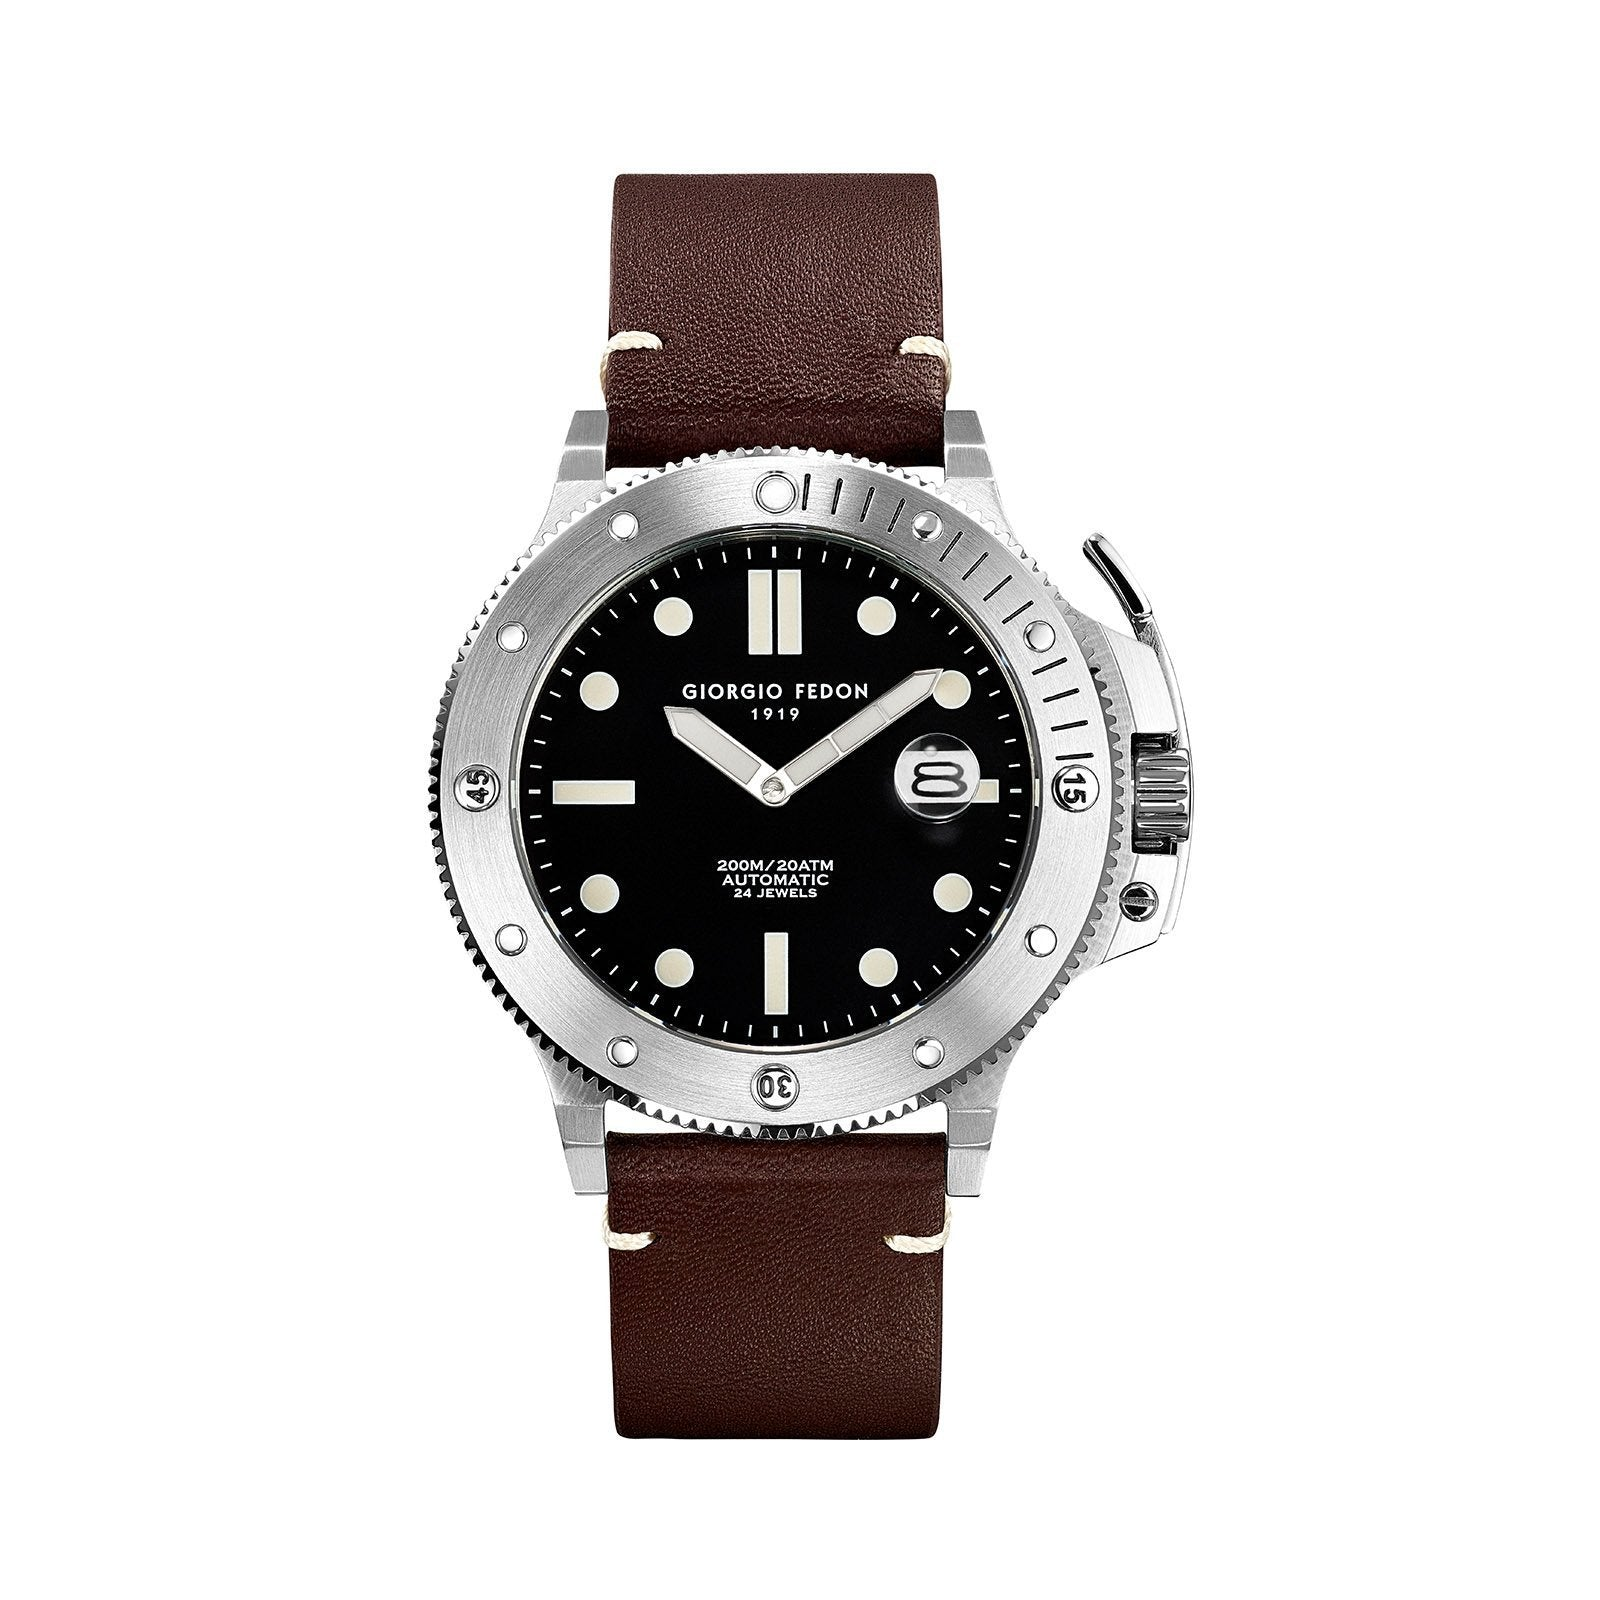 Giorgio Fedon Aquamarine Brown - Watches & Crystals